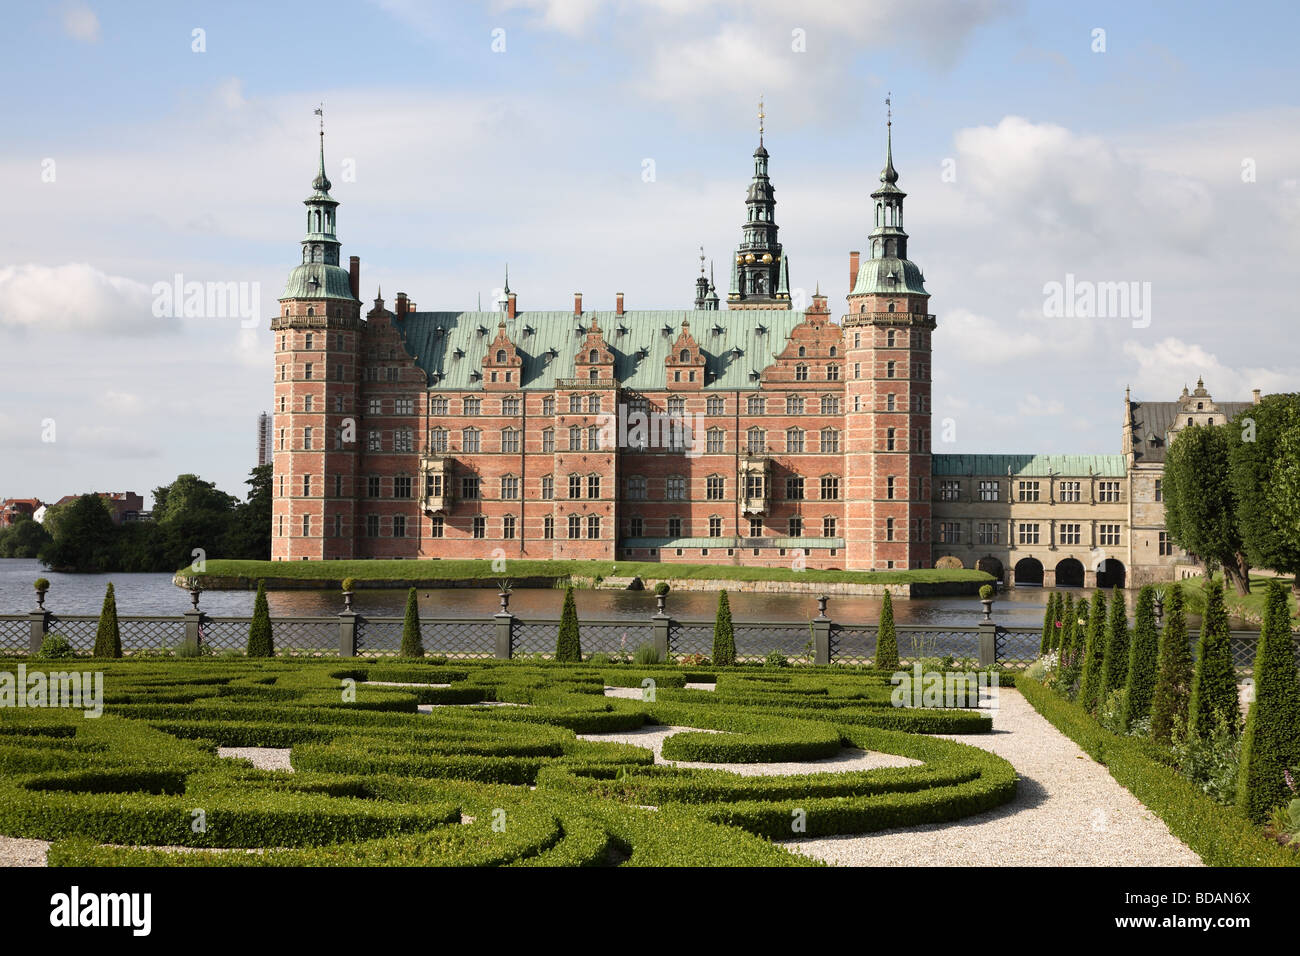 The museum of national history at frederiksborg castle copenhagen - Stock Photo The Frederiksborg Castle In Dutch Renaissance Style And The Baroque Garden In Hiller D Near Copenhagen Denmark